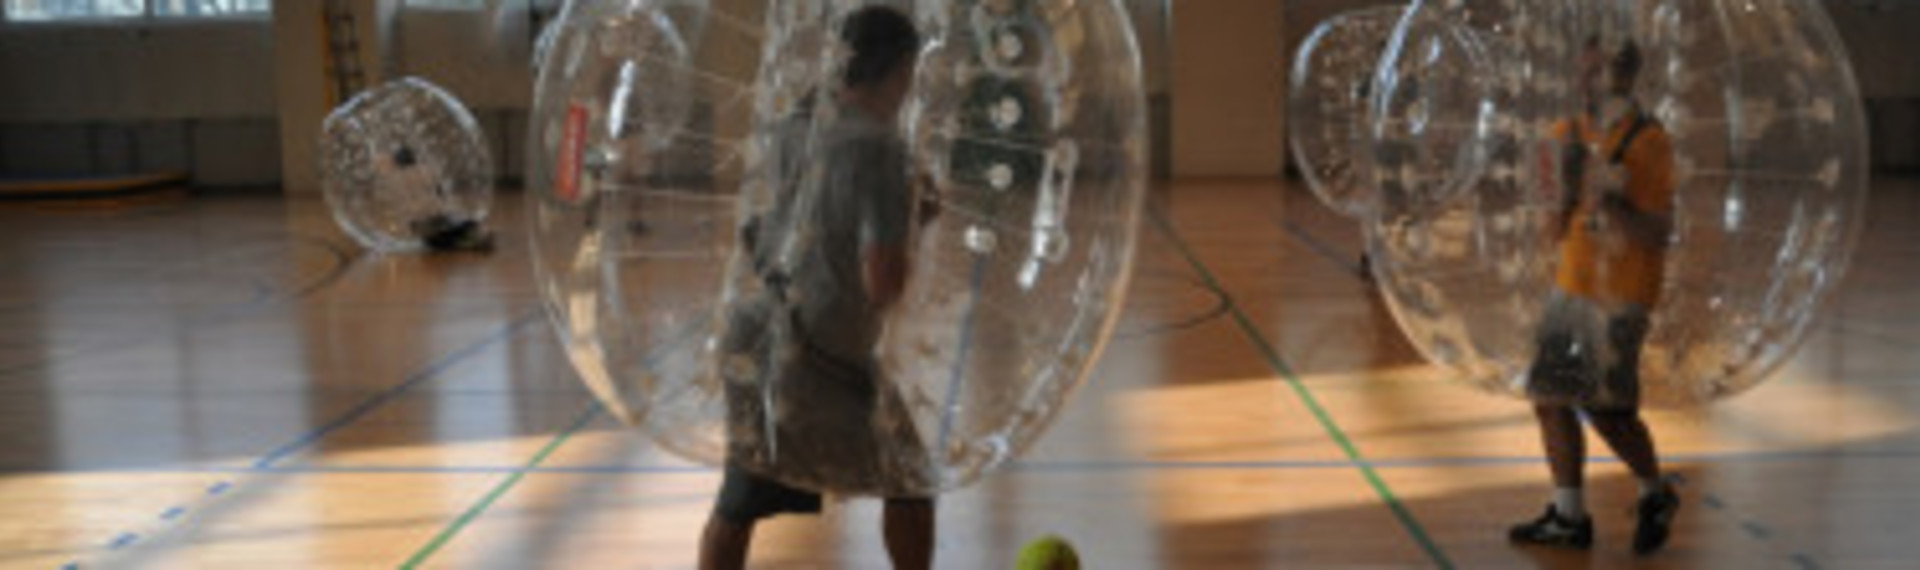 Munich Bubble Football & Arrow Tag image